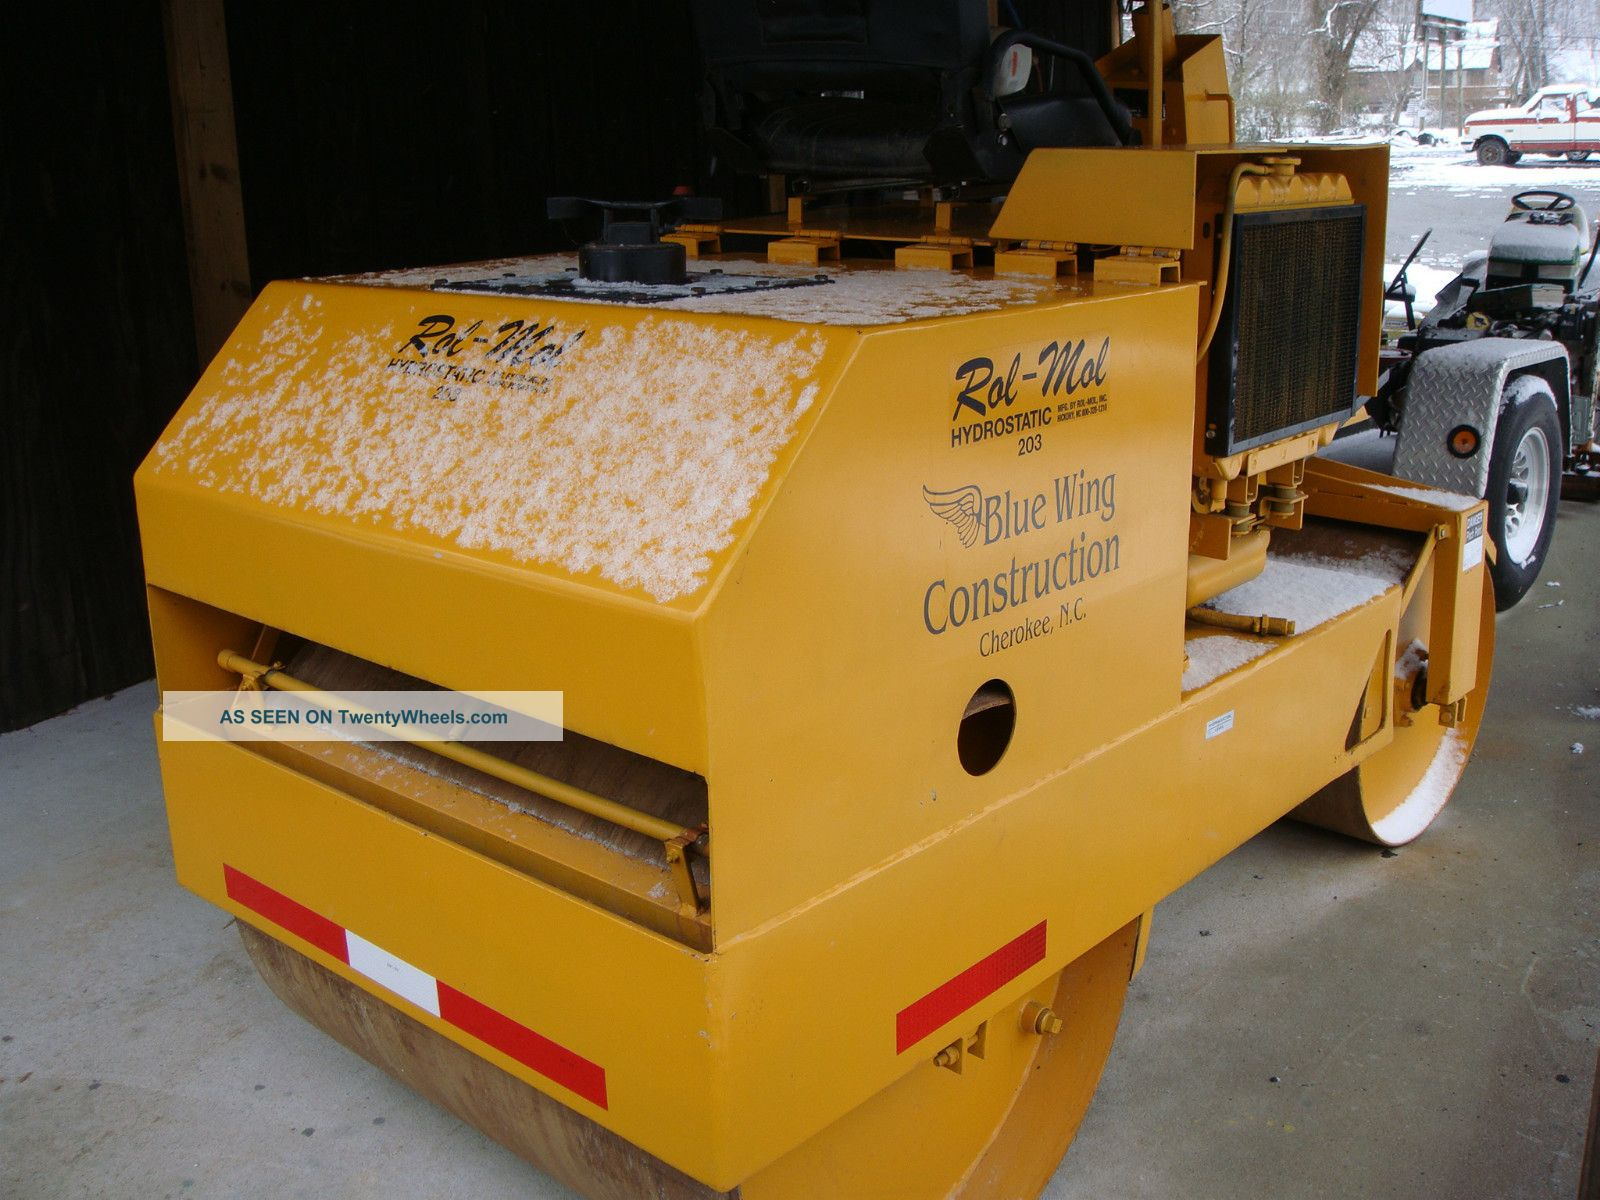 Compact Roller Compactors & Rollers - Riding photo